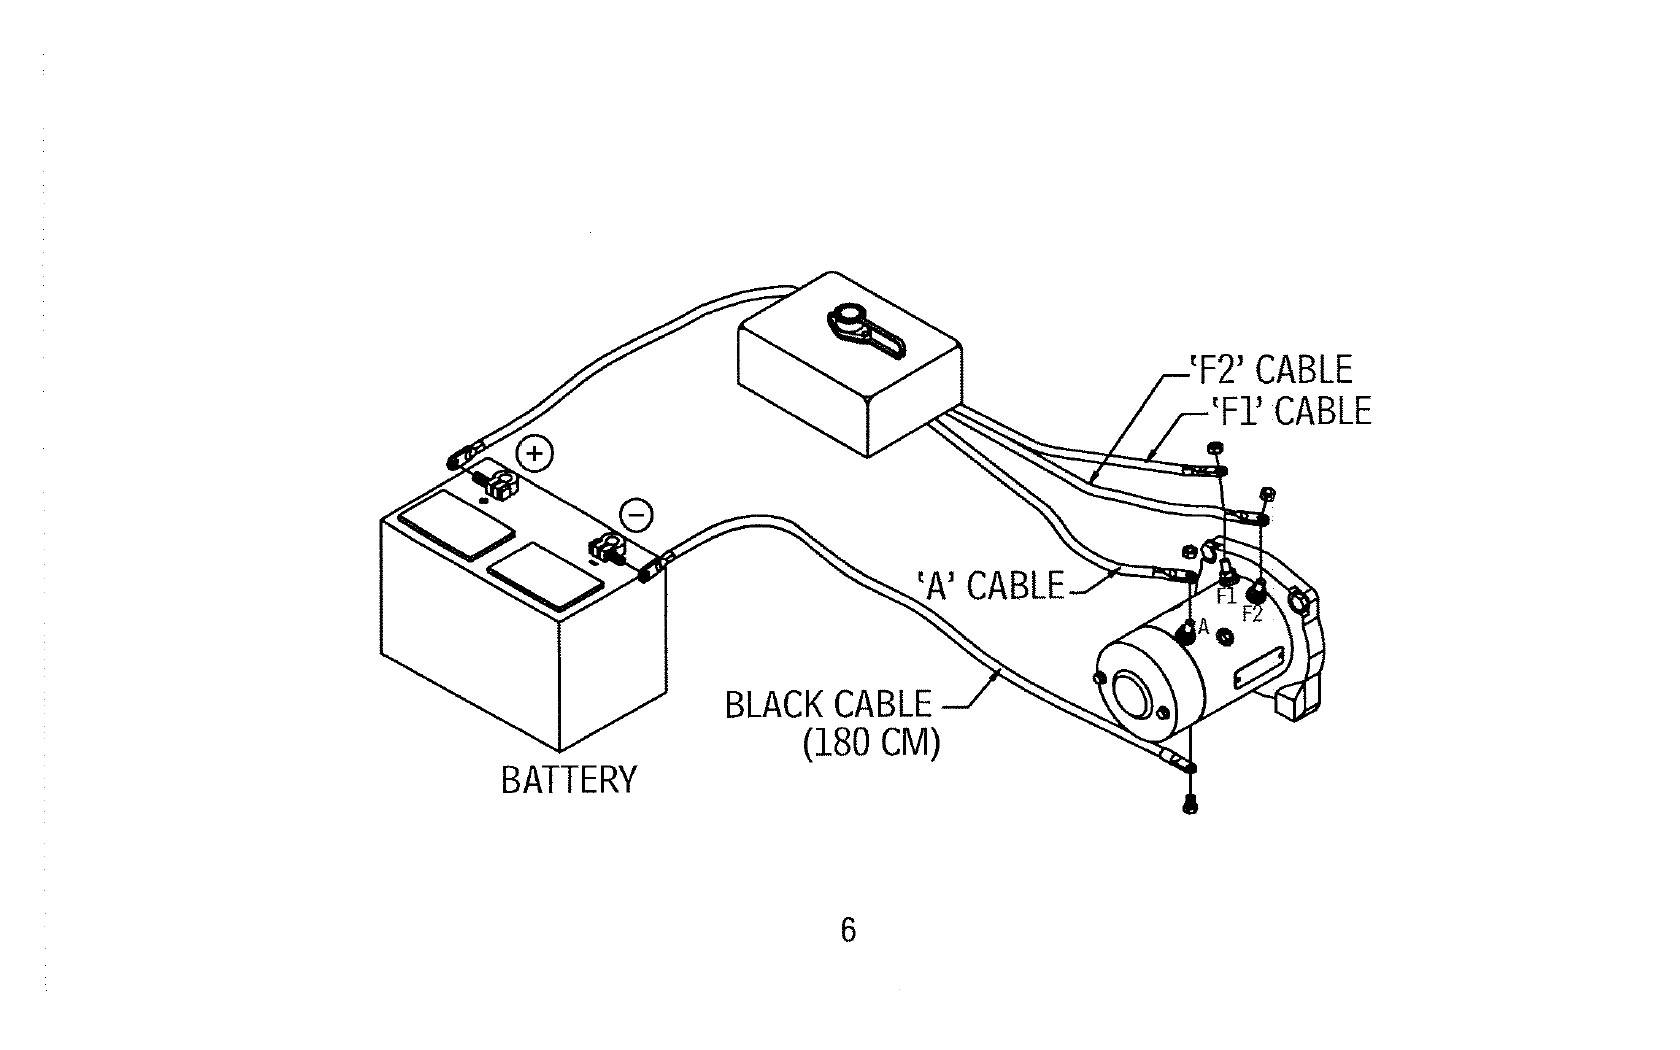 warn_cables moving warn solenoid to engine bay (fjc) yotatech forums warn 2000 winch wiring diagram at crackthecode.co